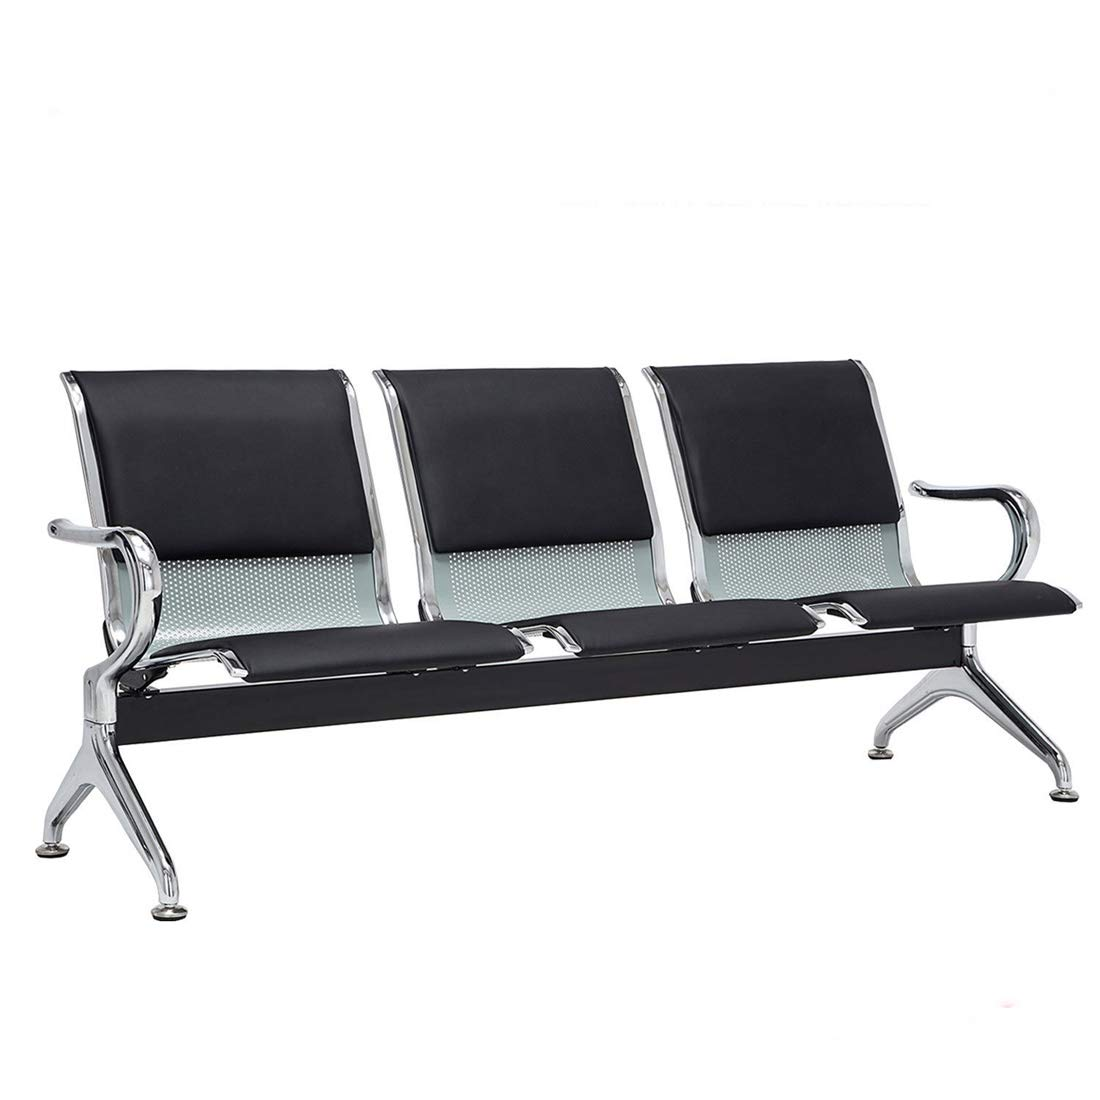 3 Seat Sofas Bench Black Cushion Cold-Rolled Steel Comfort and Durability Lobby, Hospital, Barber, Salon Office